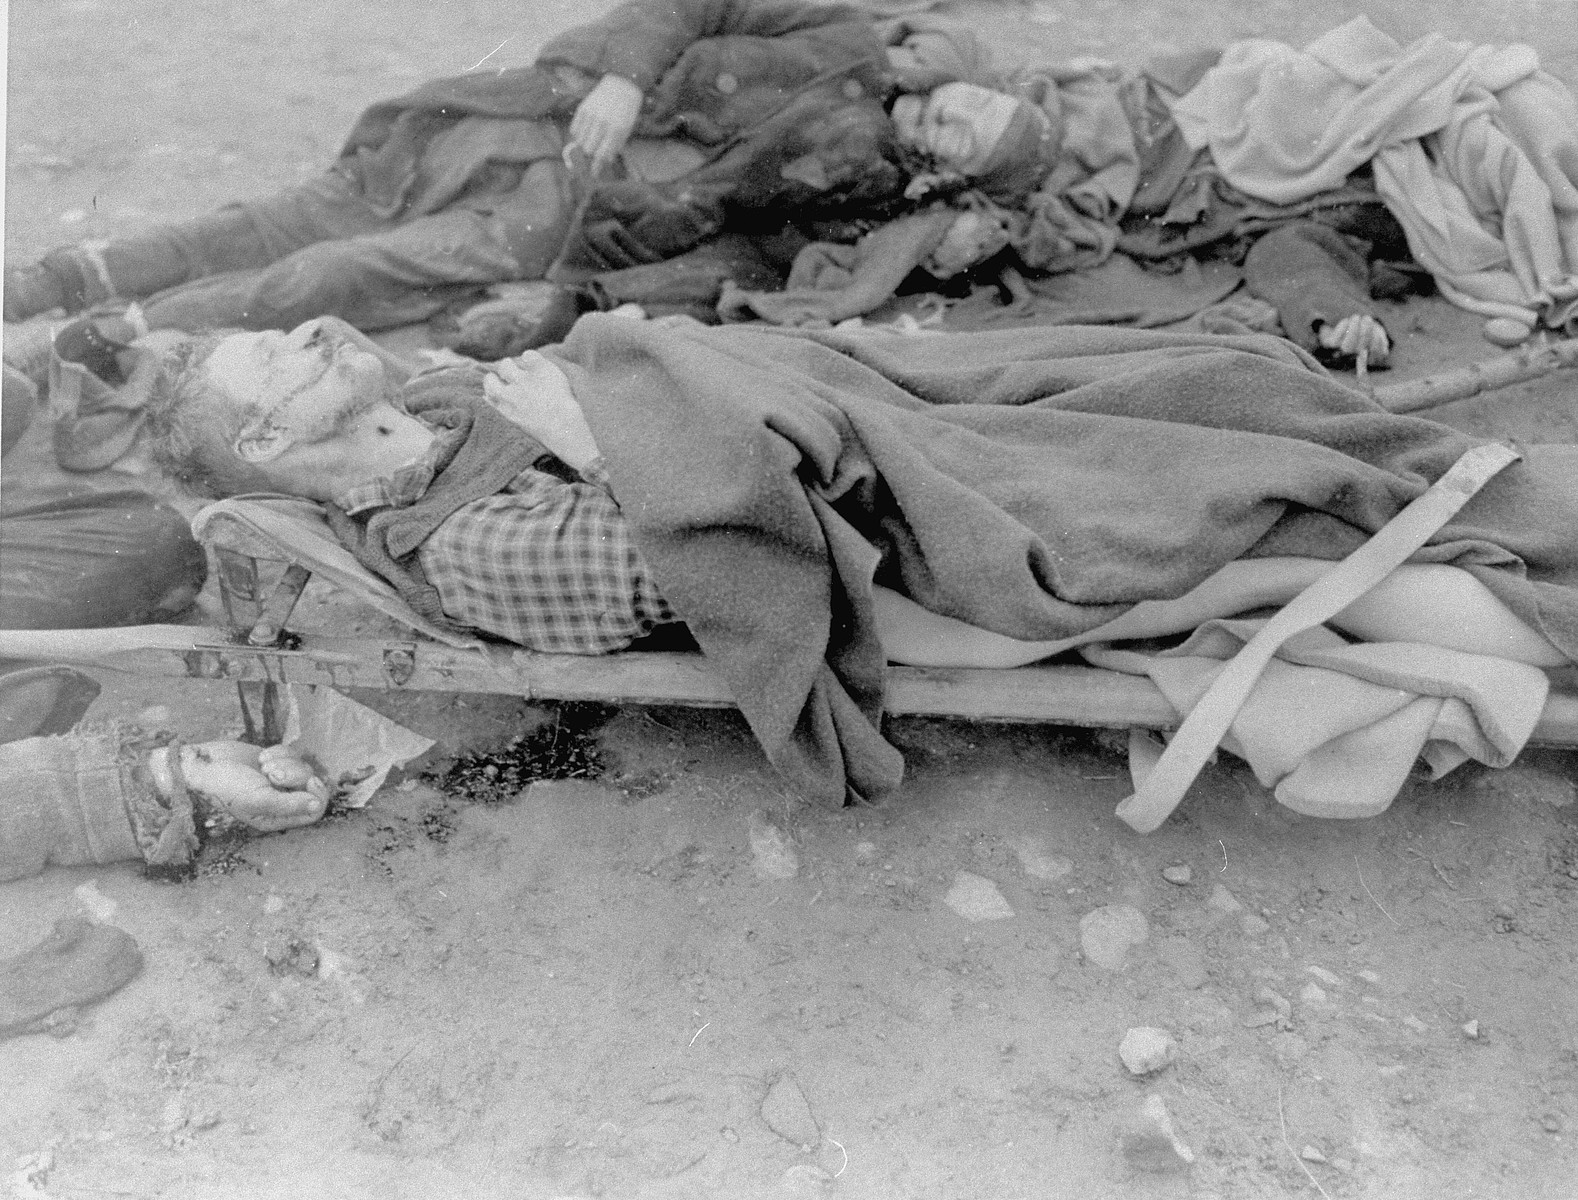 The bodies of prisoners shot in Ohrdruf during the evacuation of the camp, one of which has been placed on a stretcher.